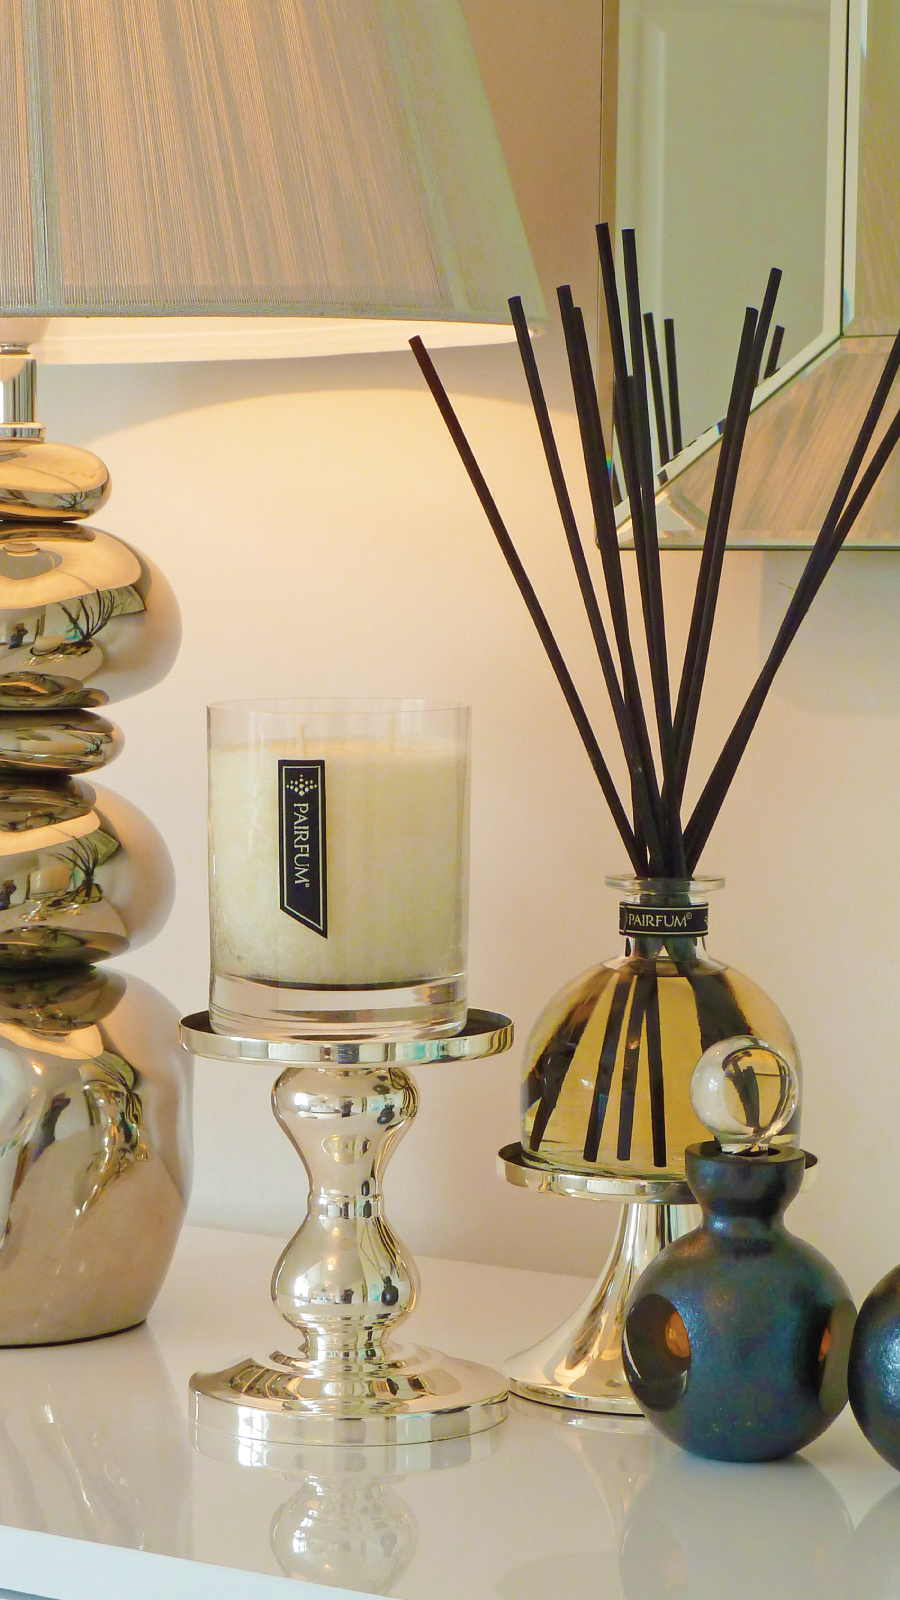 Lifestyle Sideboard Home Fragrance Candle Reed Diffuser 9 16